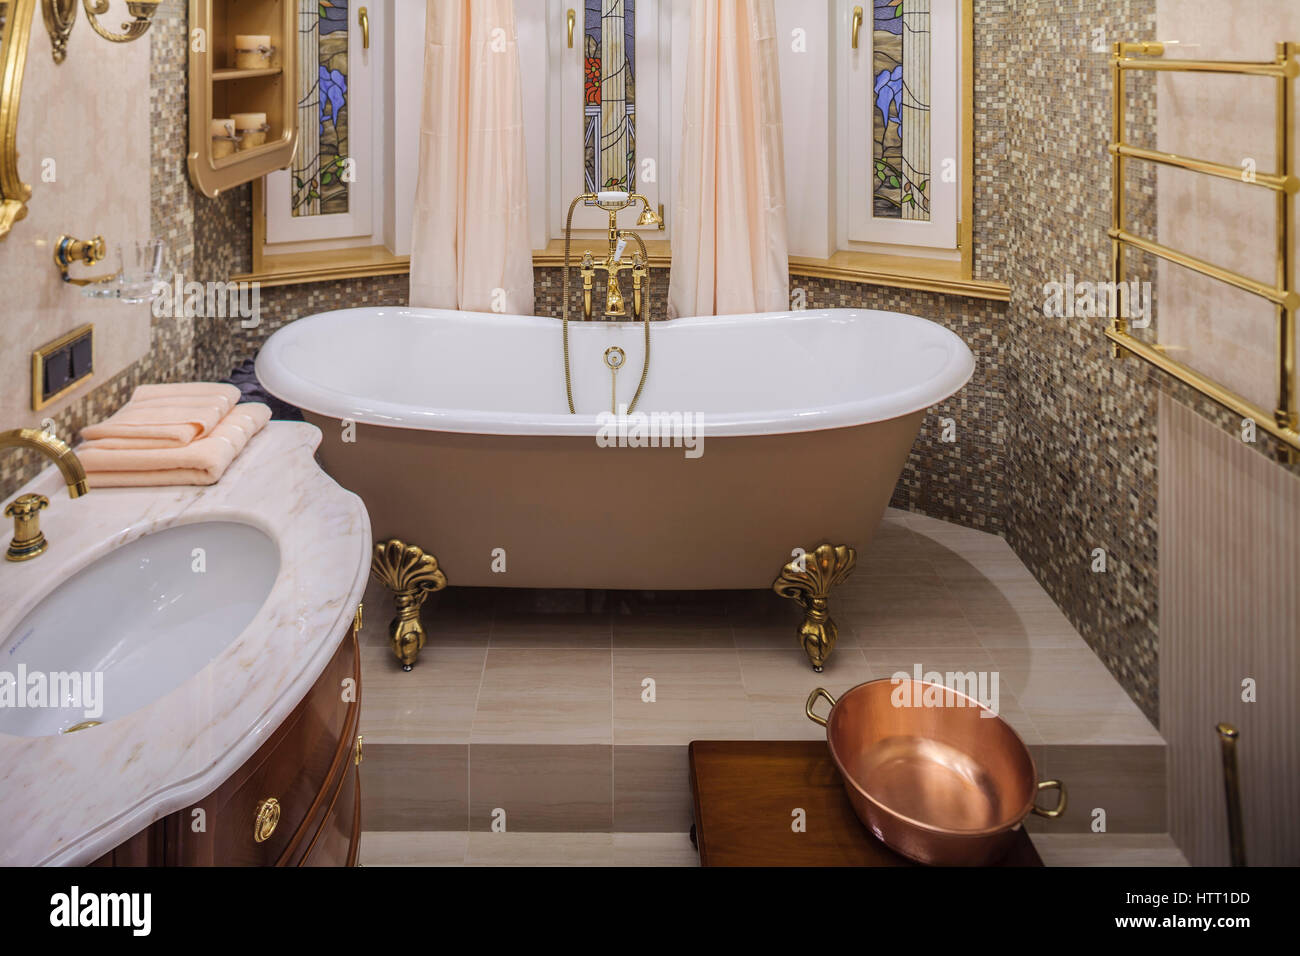 Classic bathroom interior, Old-fashioned bathtub spa Stock Photo ...